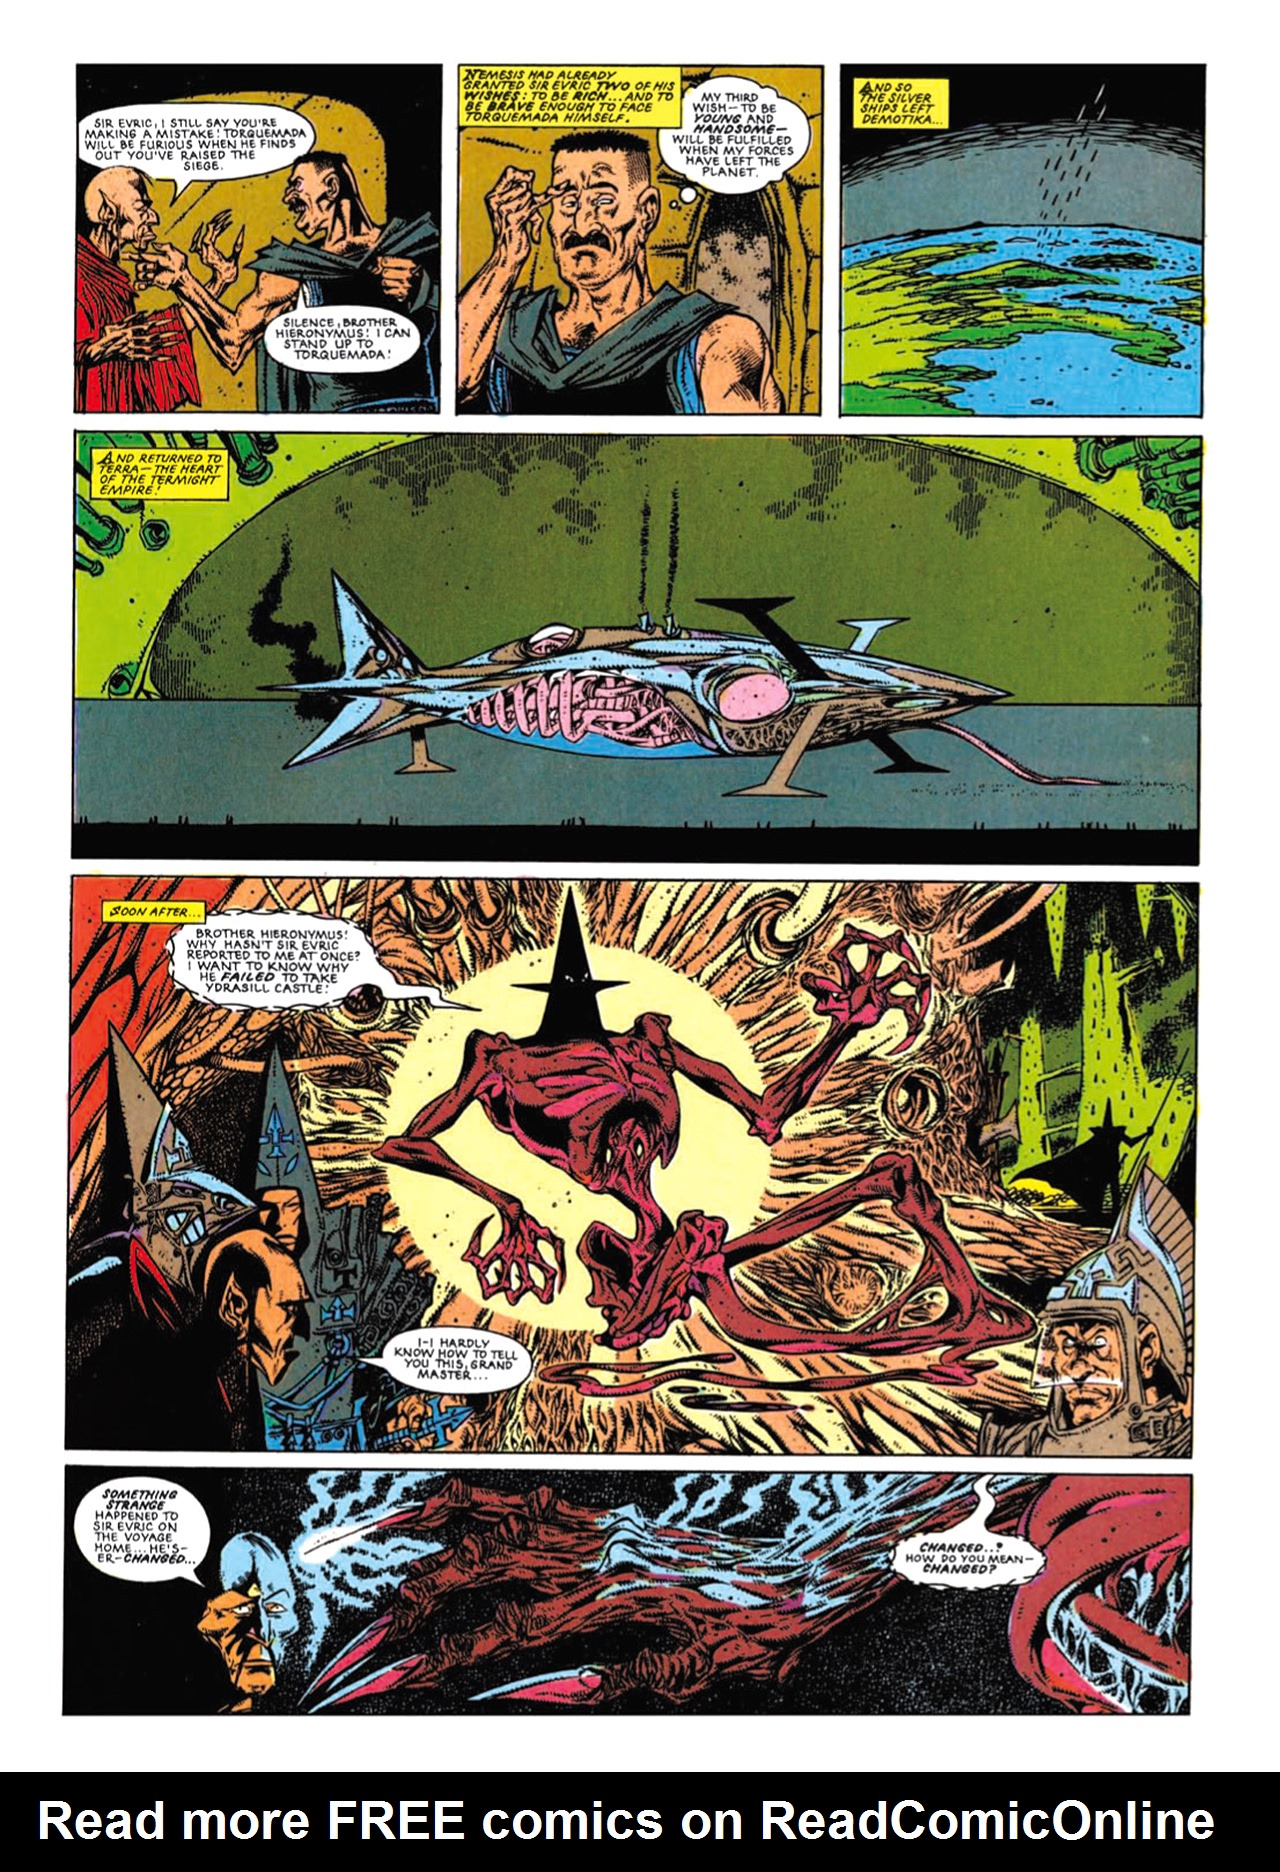 Read online Nemesis The Warlock comic -  Issue # TPB Deviant Edition - 206